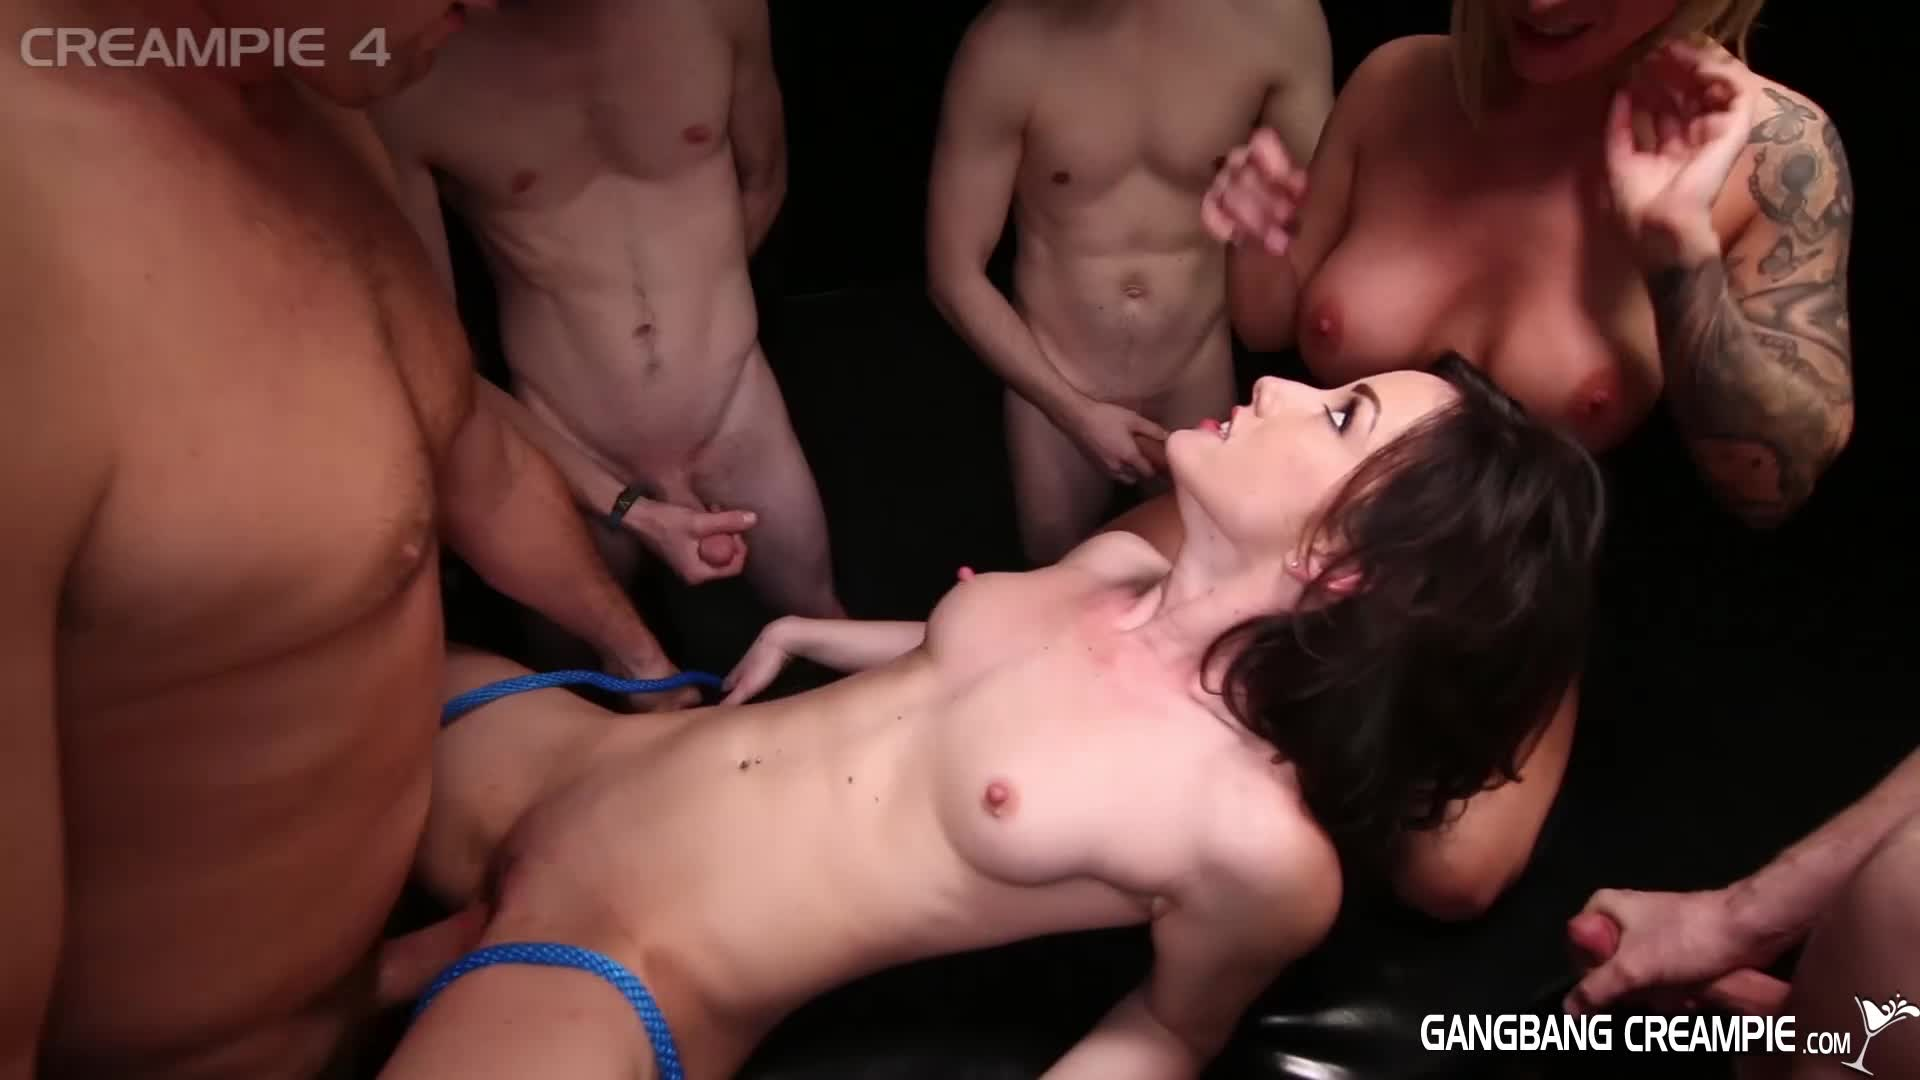 Asian Guy White Girl Creampie